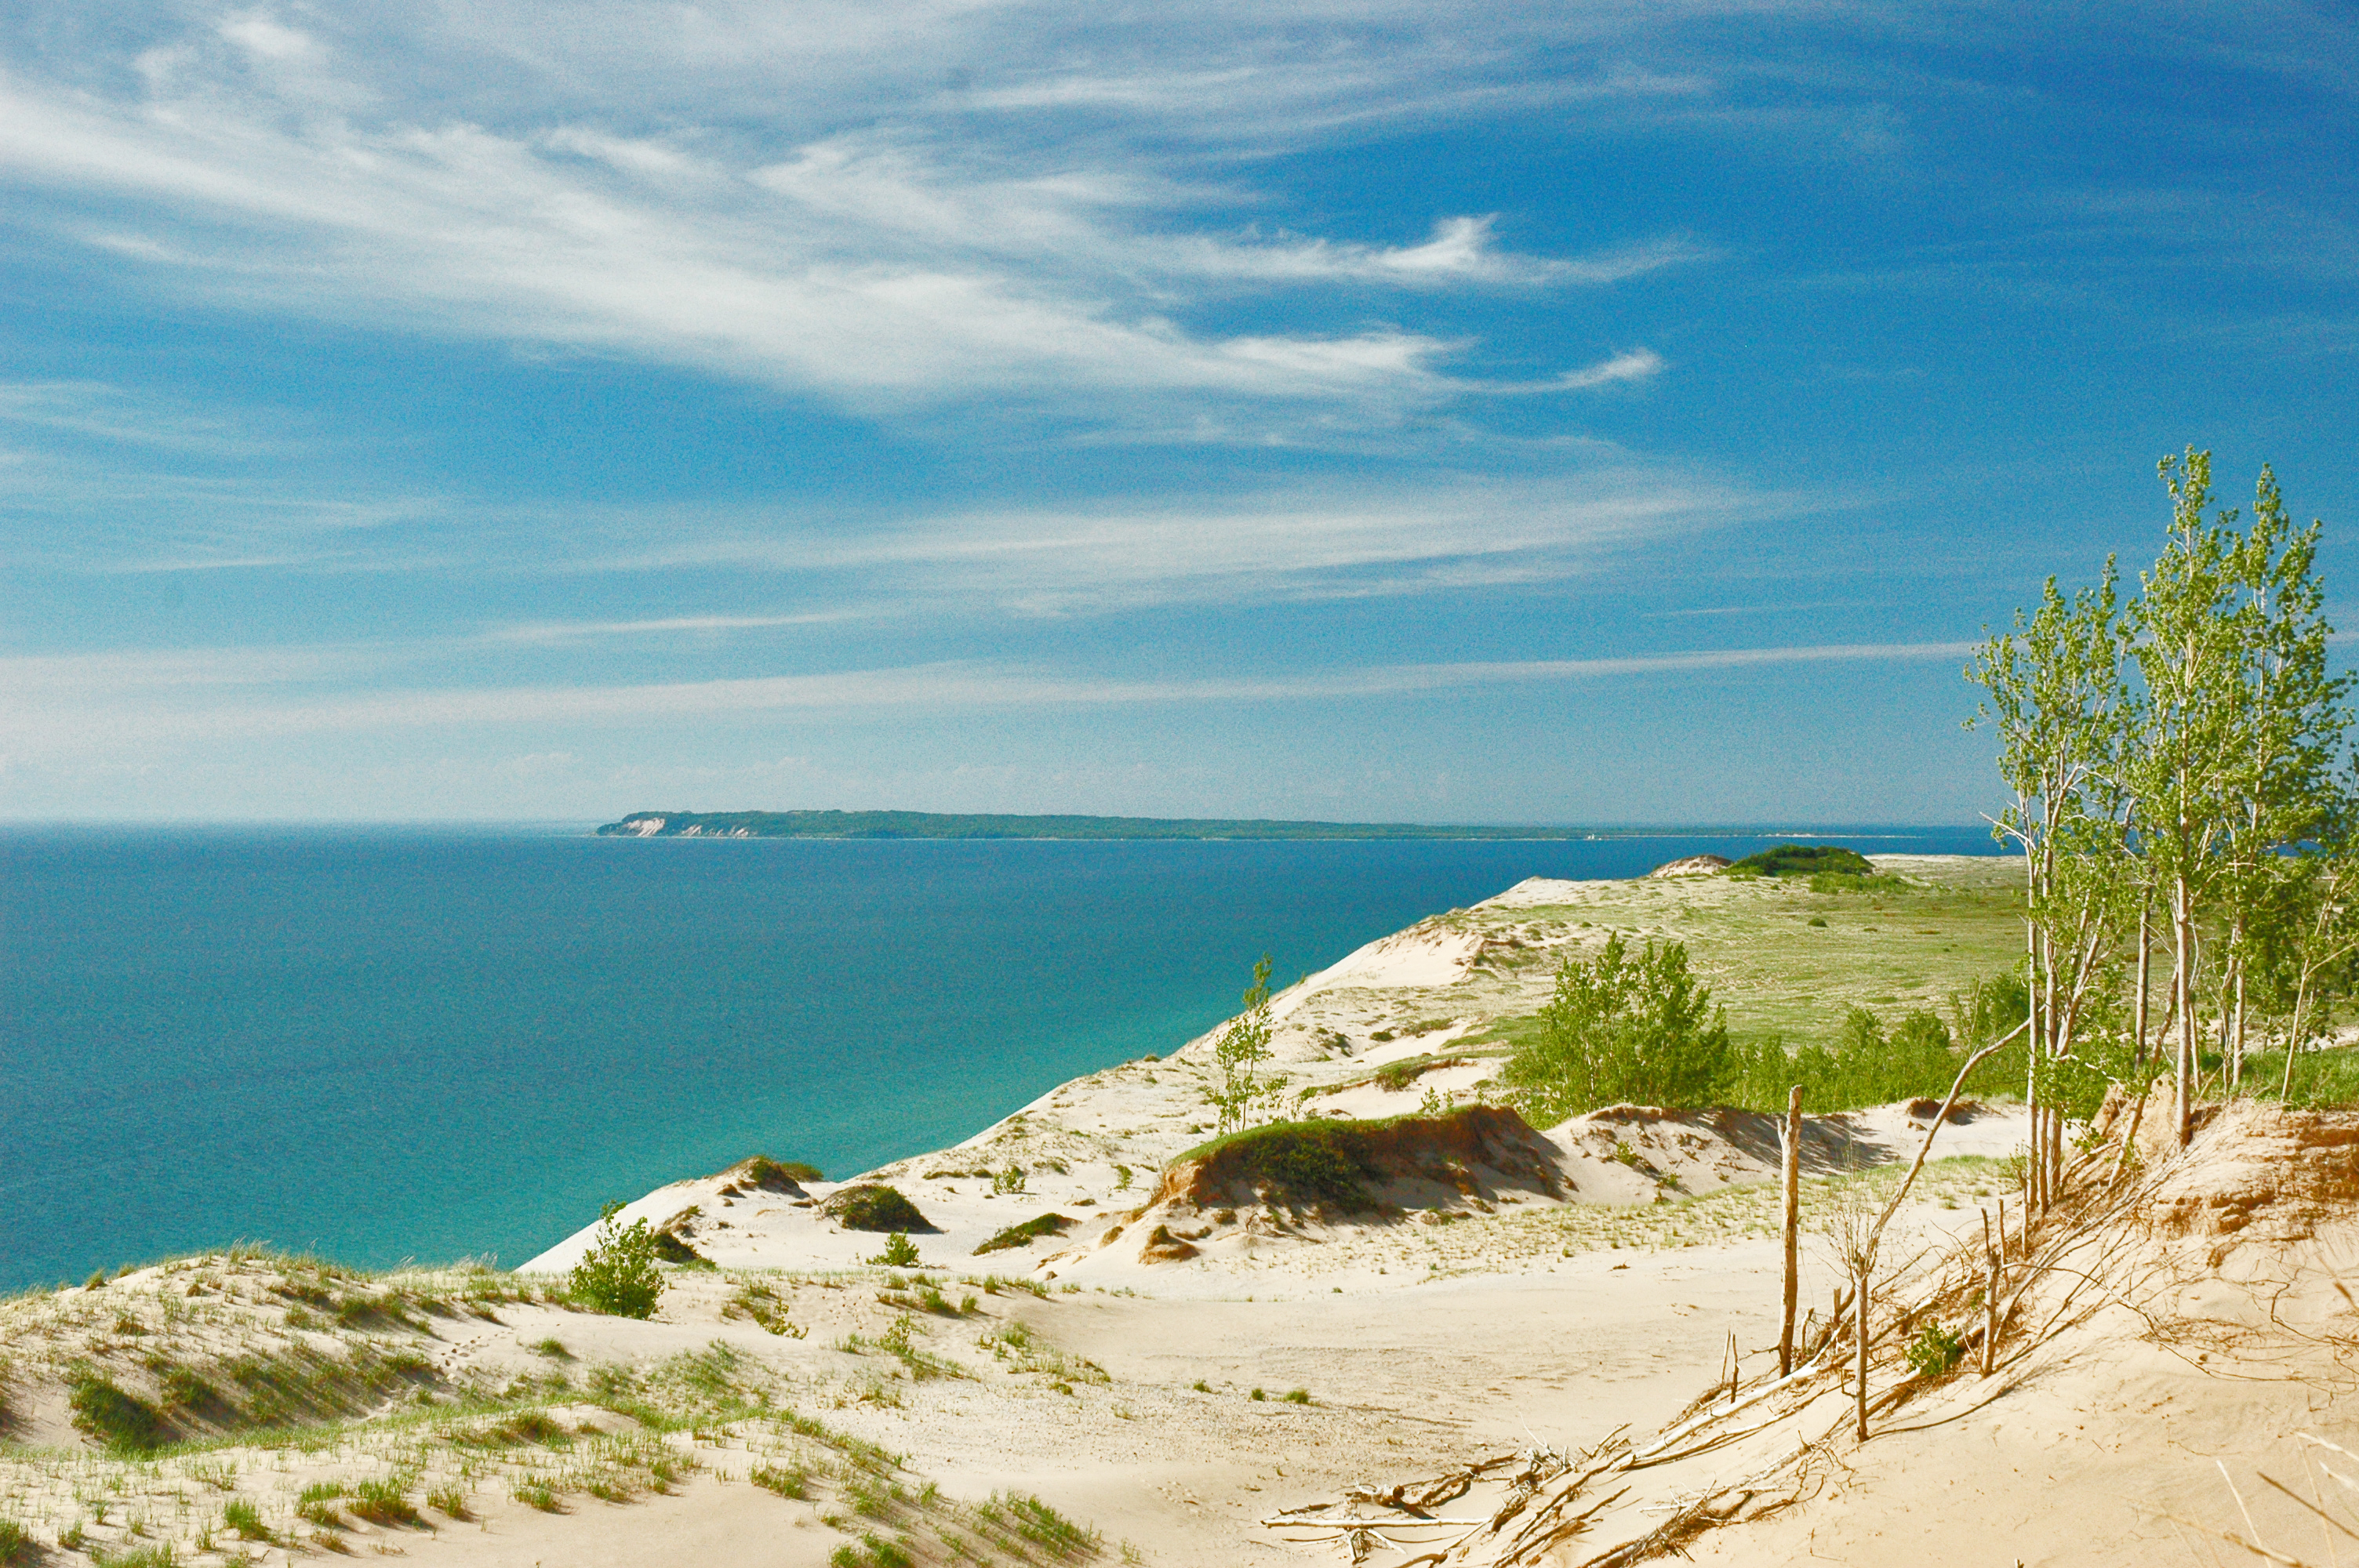 Sleeping Bear Dunes overlooking water